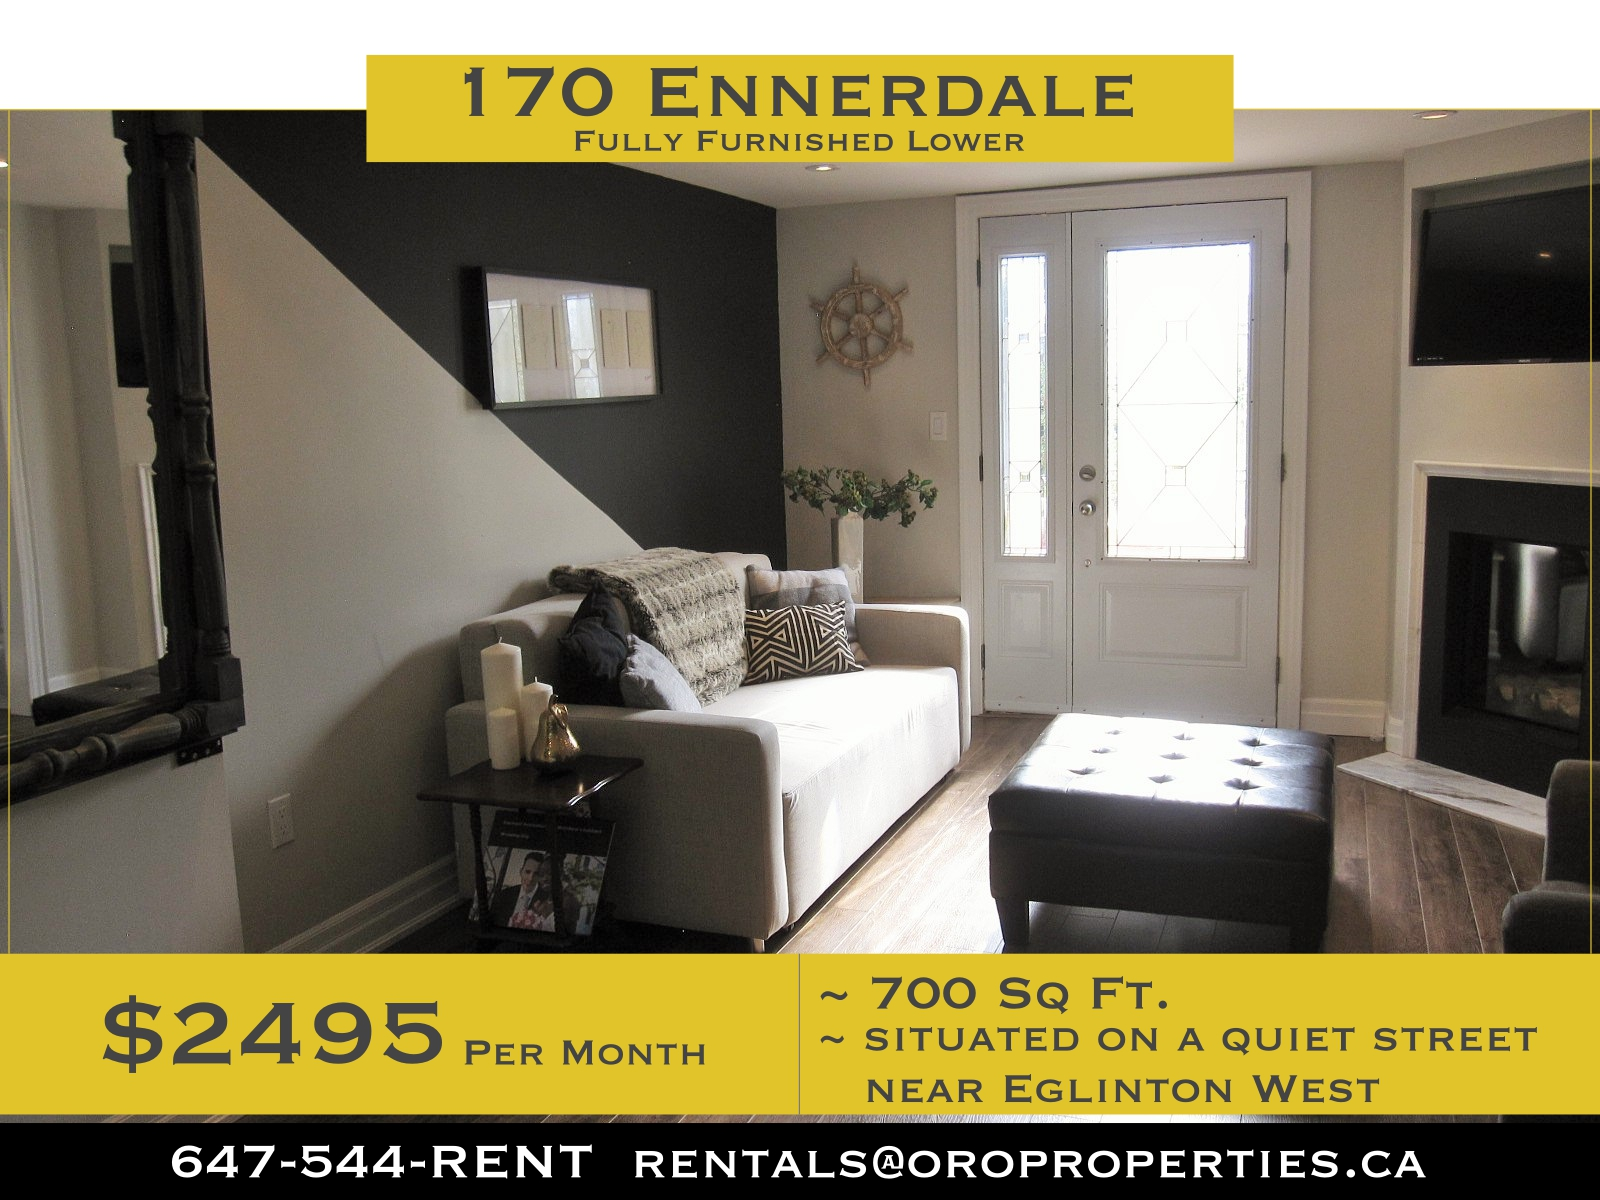 Clean, Trendy Eglinton West Gem Not your average basement suite: 2-Bedroom Furnished